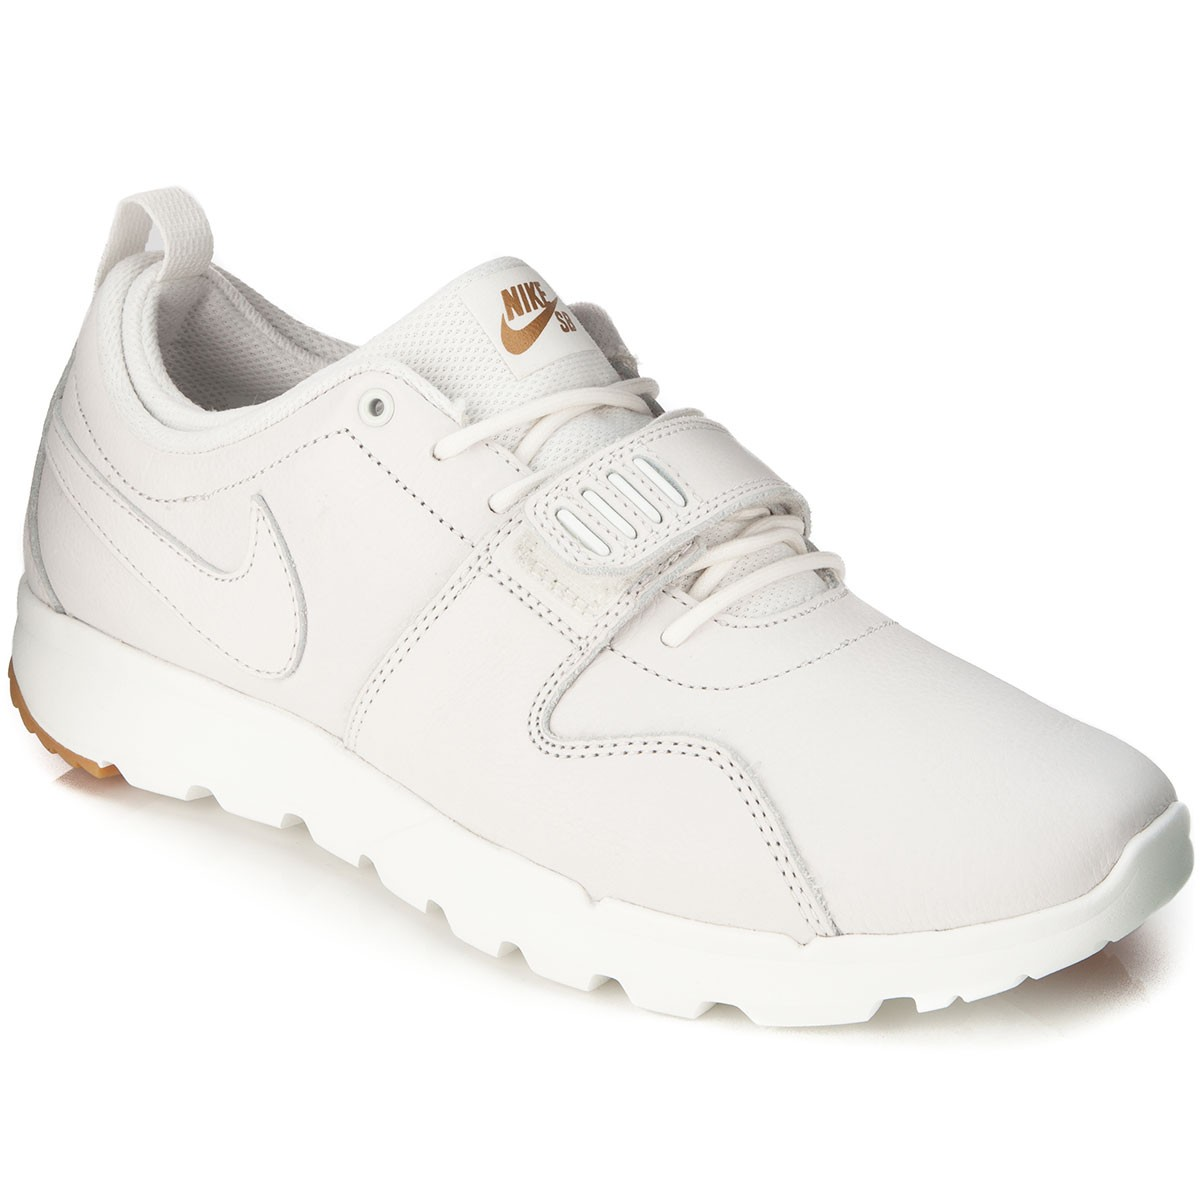 Nike Trainerendor Premium Shoes - White/Gum Light Brown/White - 13.0